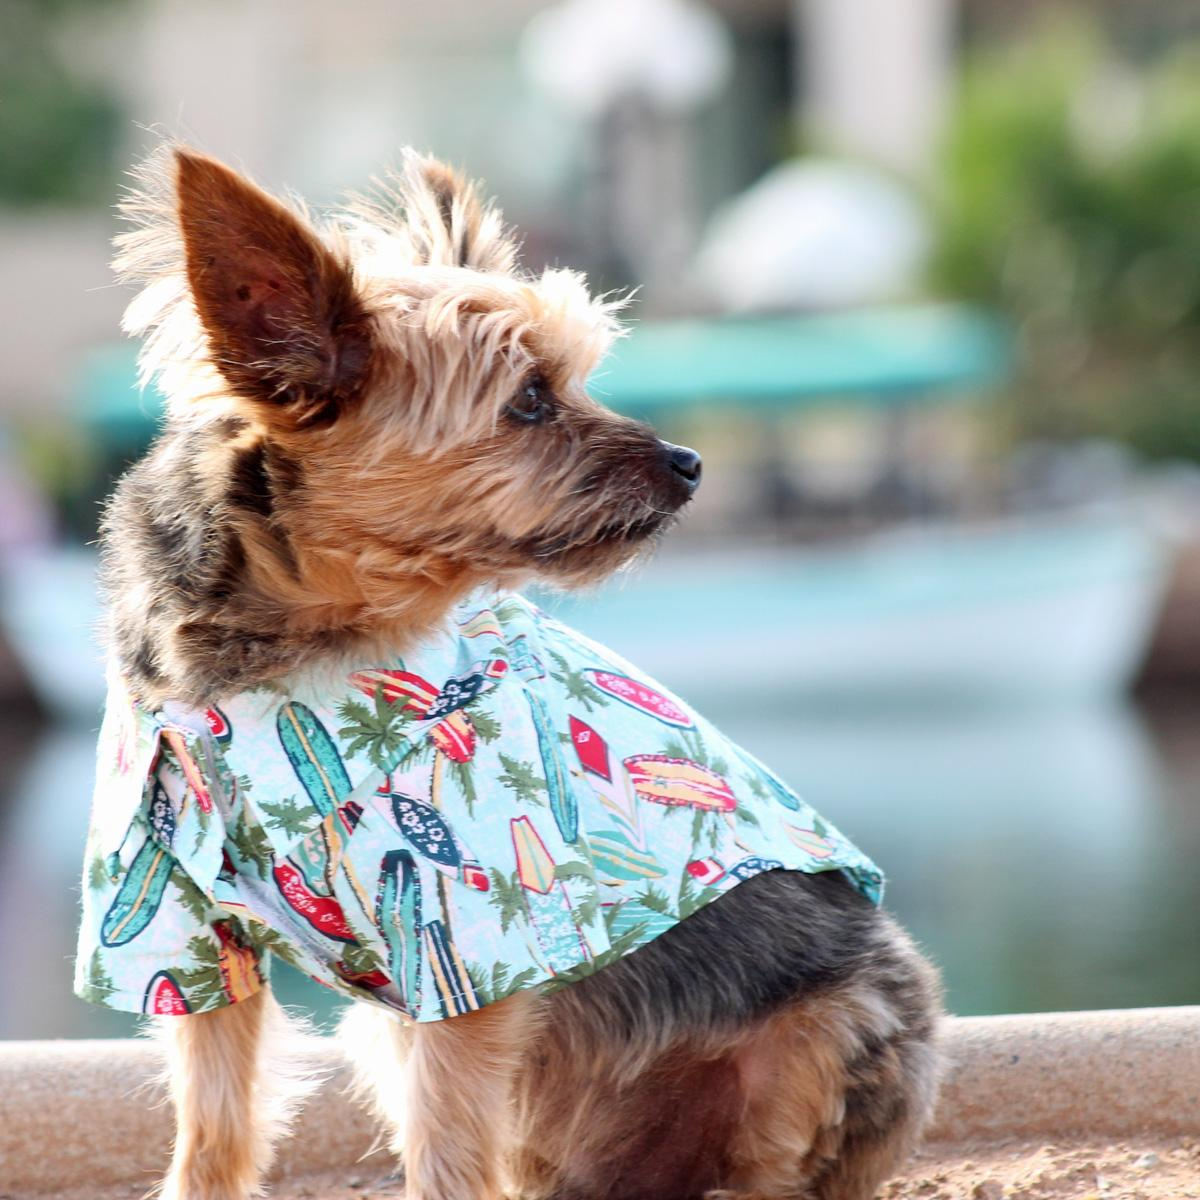 Hawaiian Camp Shirt by Doggie Design - Surfboards and Palms